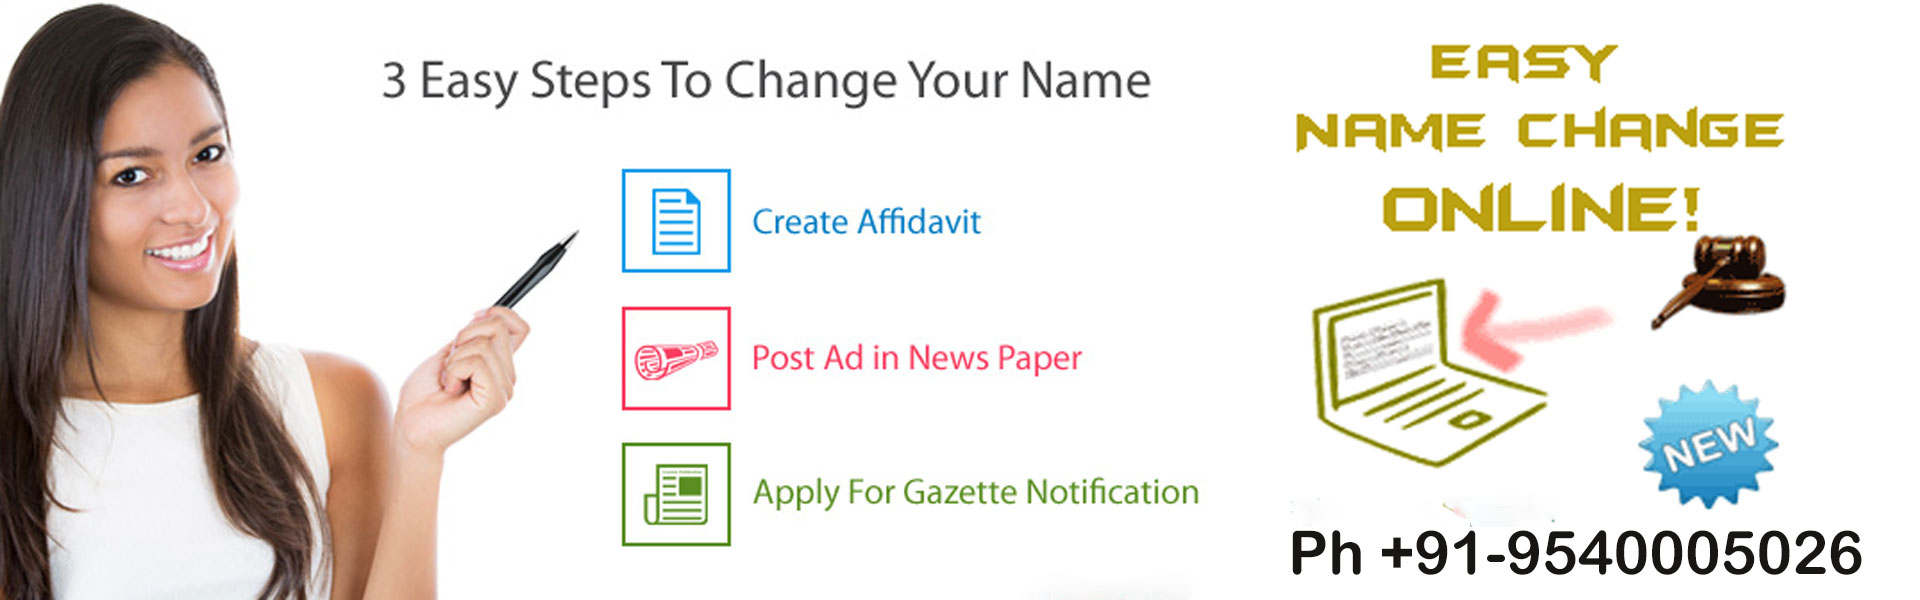 Name Change Online | Name Change In Gazette | Name Change Affidavit